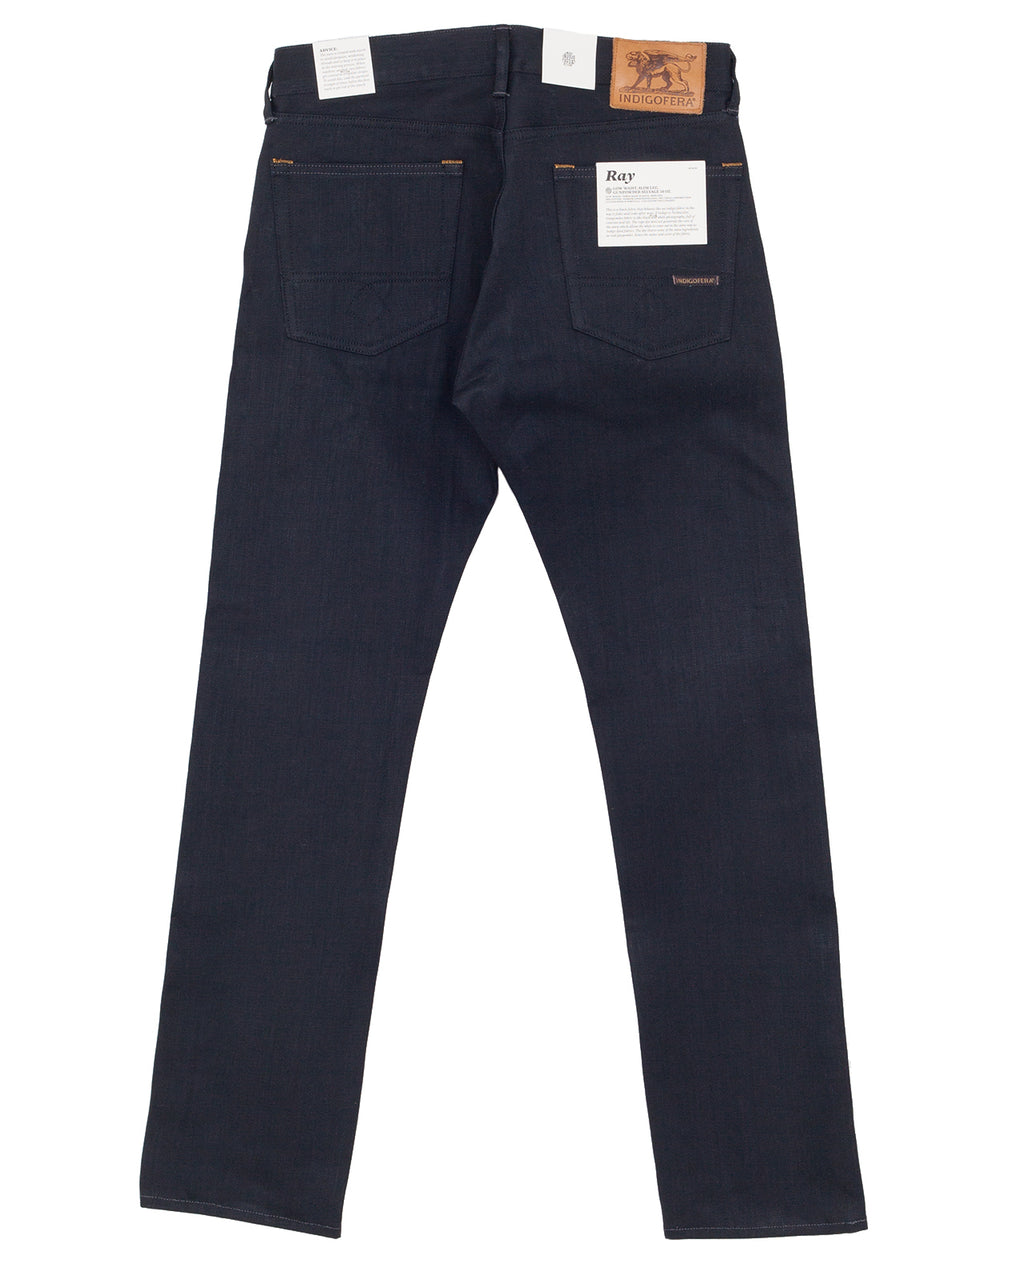 Indigofera Ray Jeans, Gunpowder